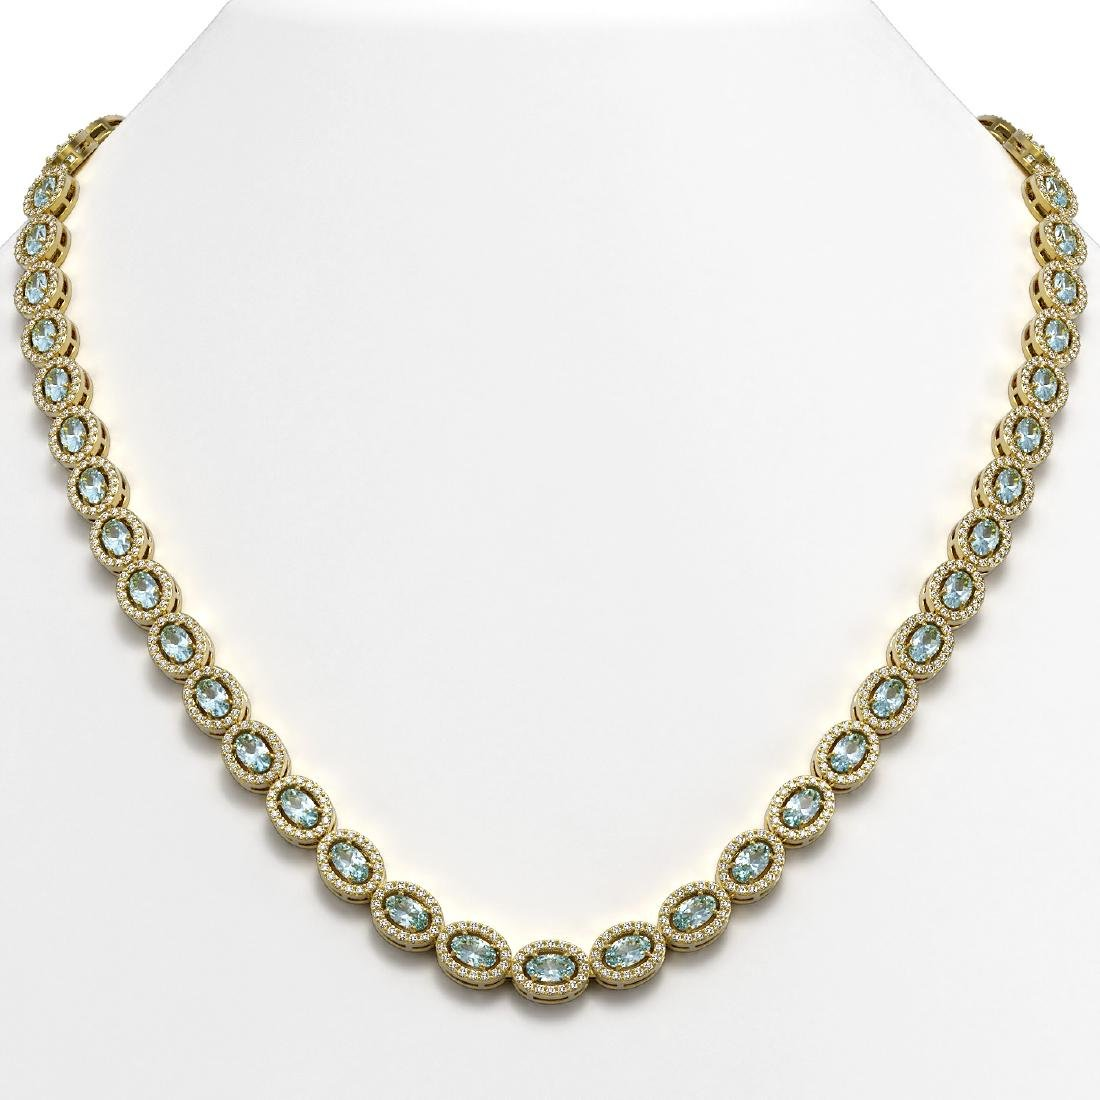 20.71 CTW Aquamarine & Diamond Halo Necklace 10K Yellow